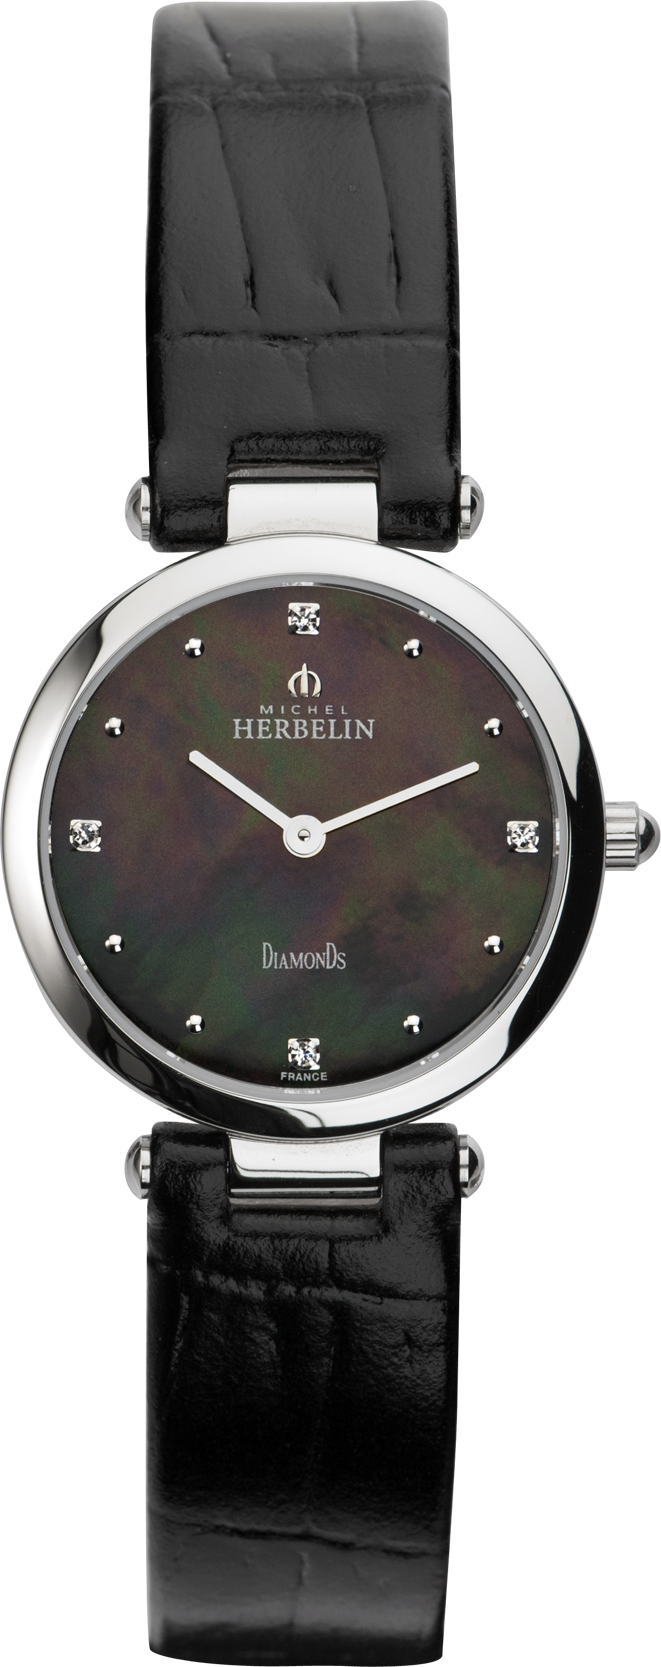 67930 - Michel Herbelin Diamond set Small sized Slimline Strap Watch